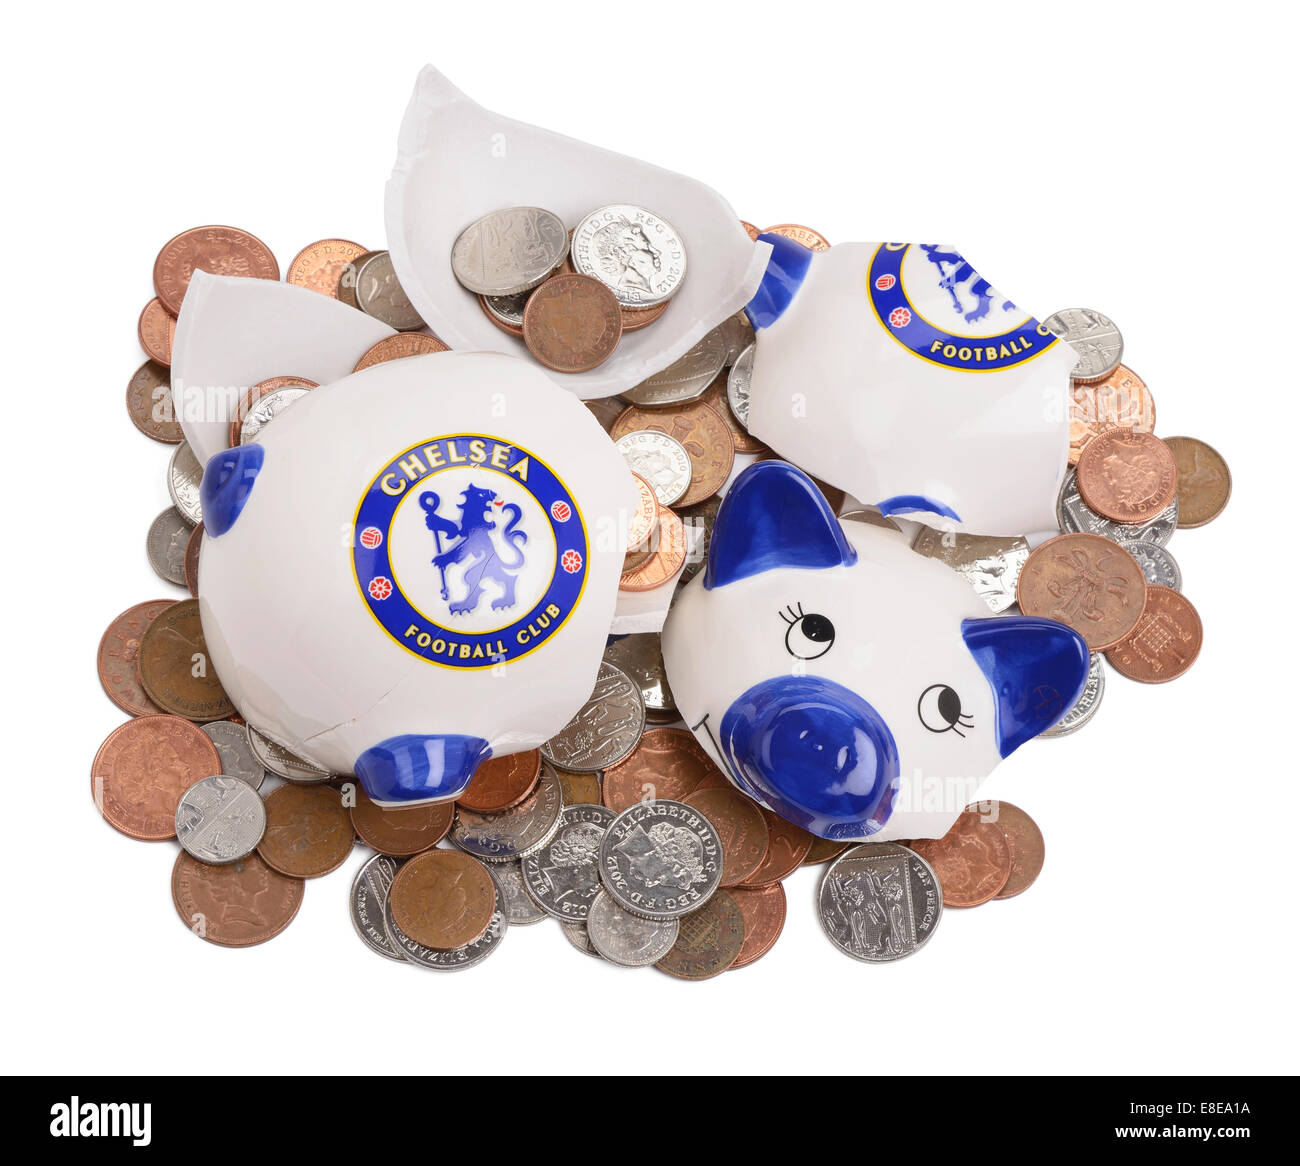 Smashed and broken Chelsea Football Club piggy bank - Stock Image